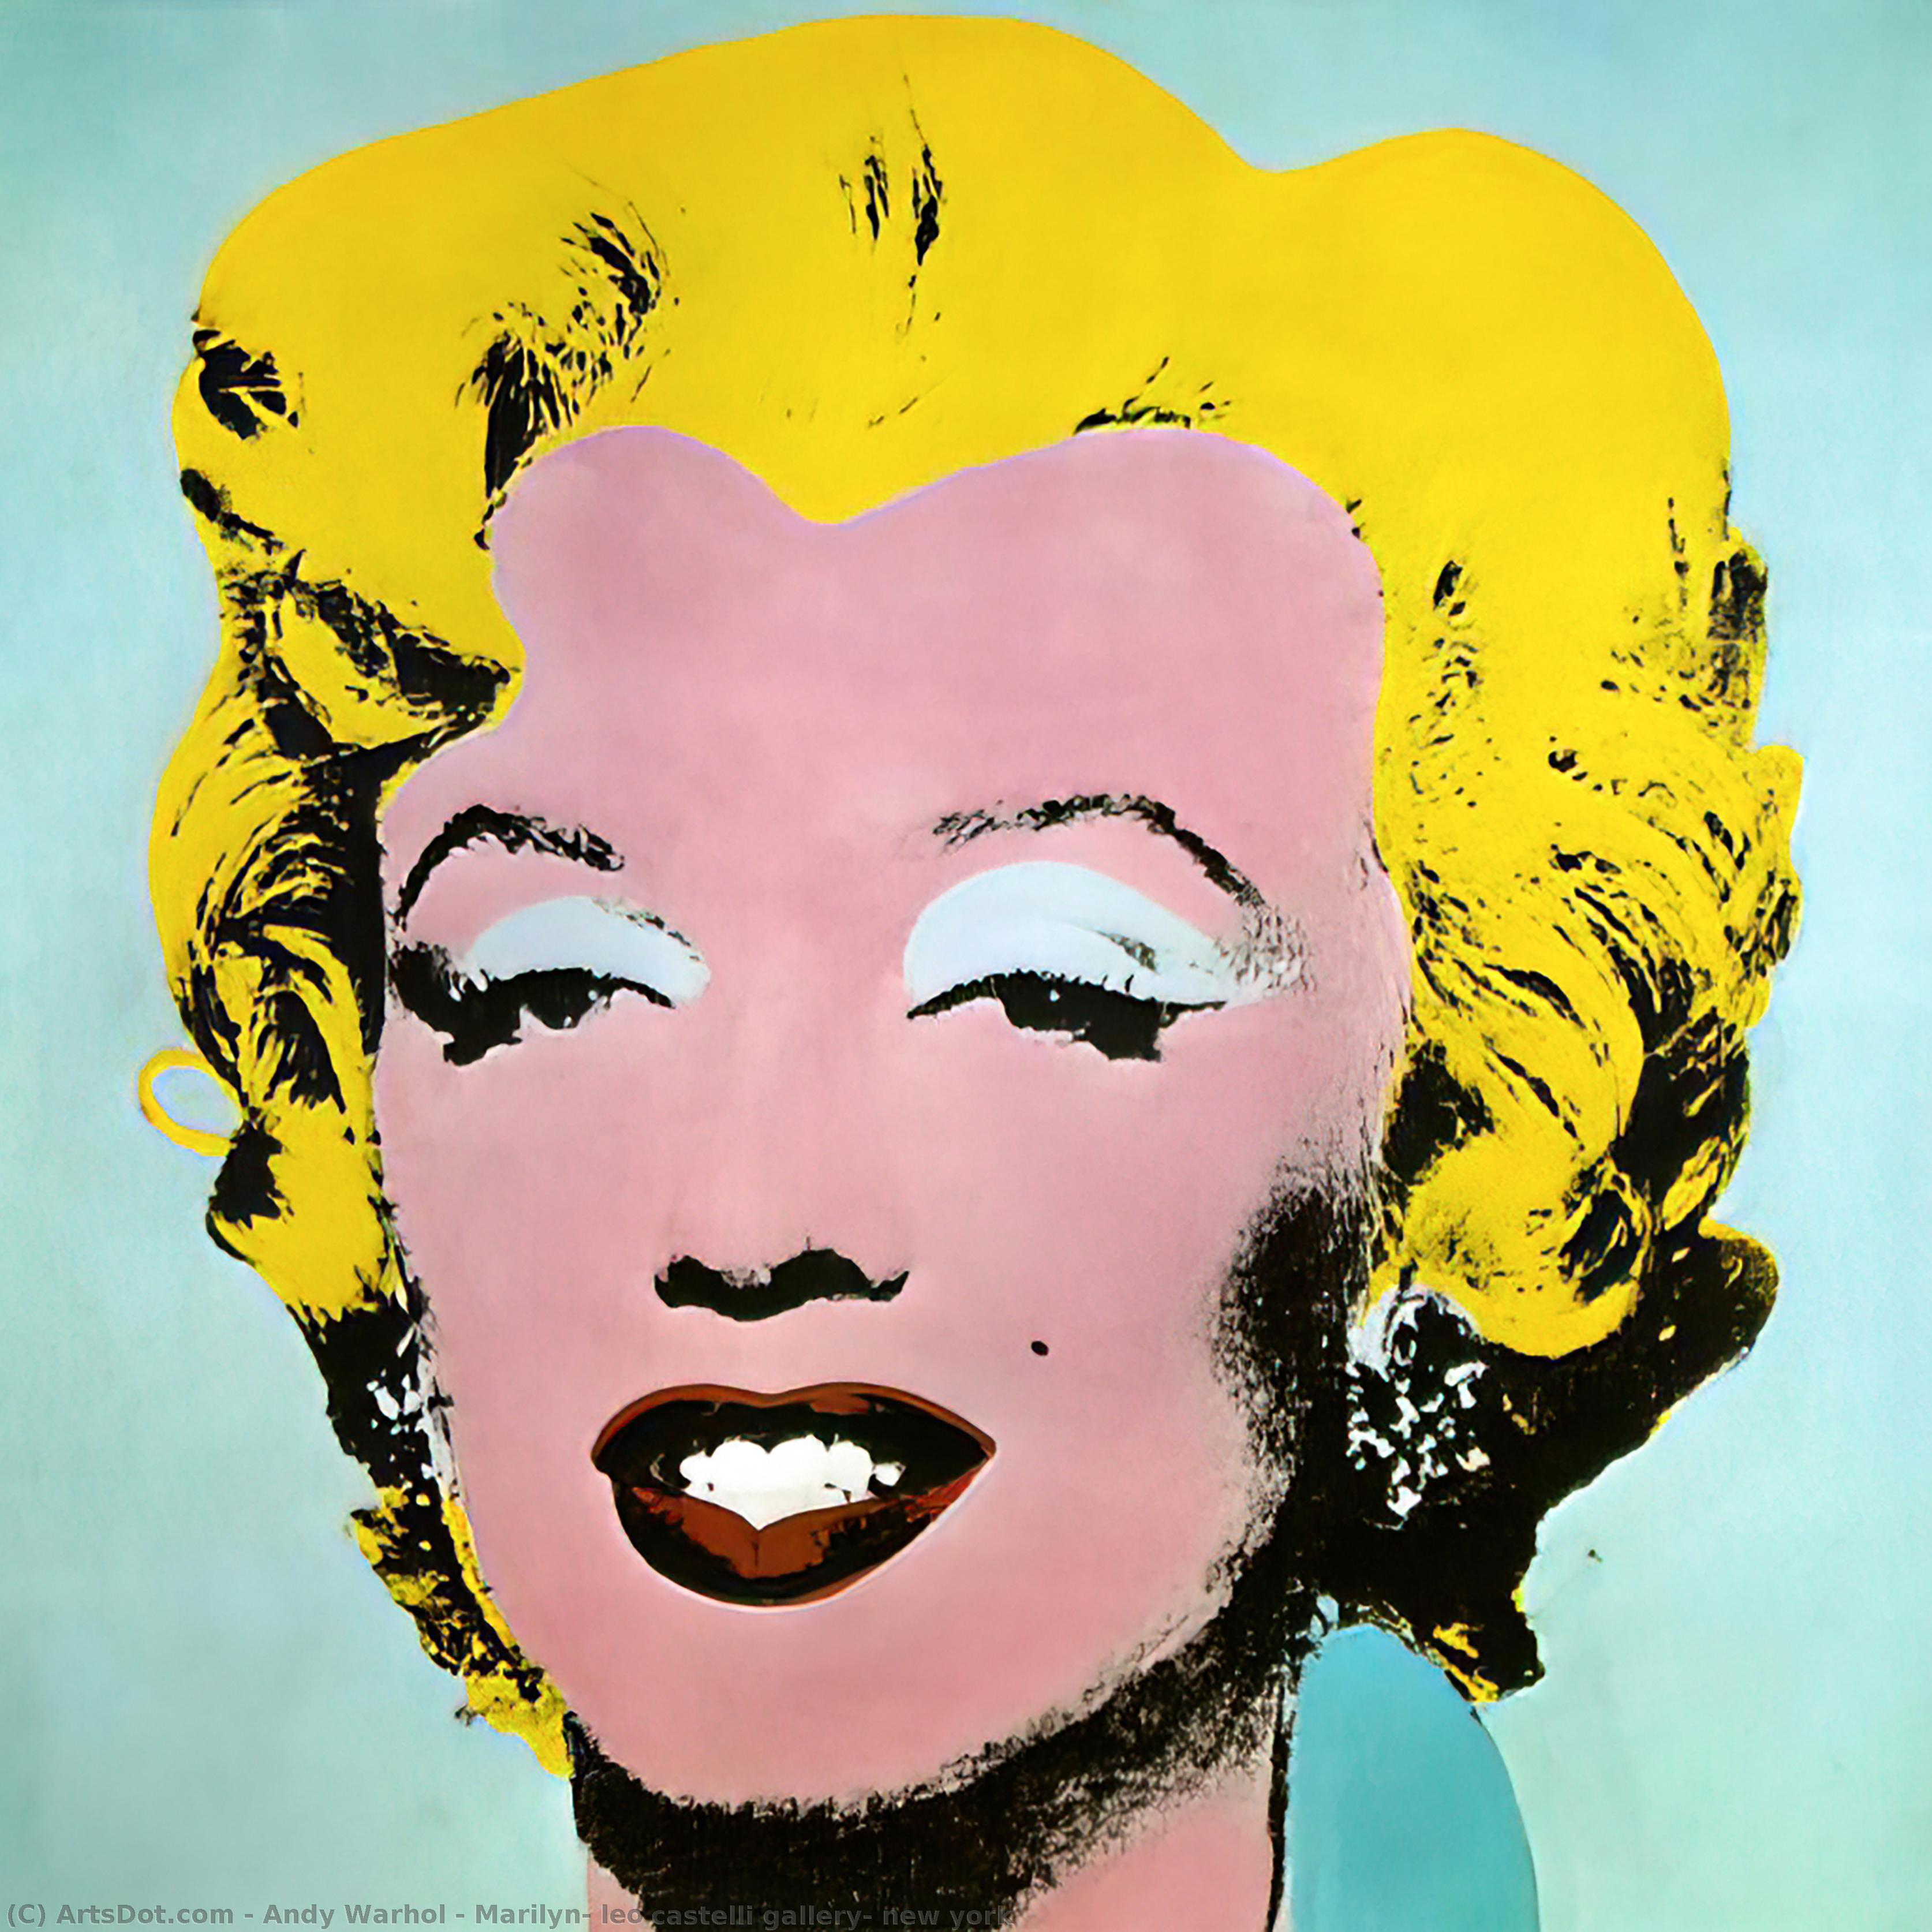 Marilyn, leo castelli gallery, new york, 1964 by Andy Warhol (1928-1987, United States) | Museum Art Reproductions | ArtsDot.com